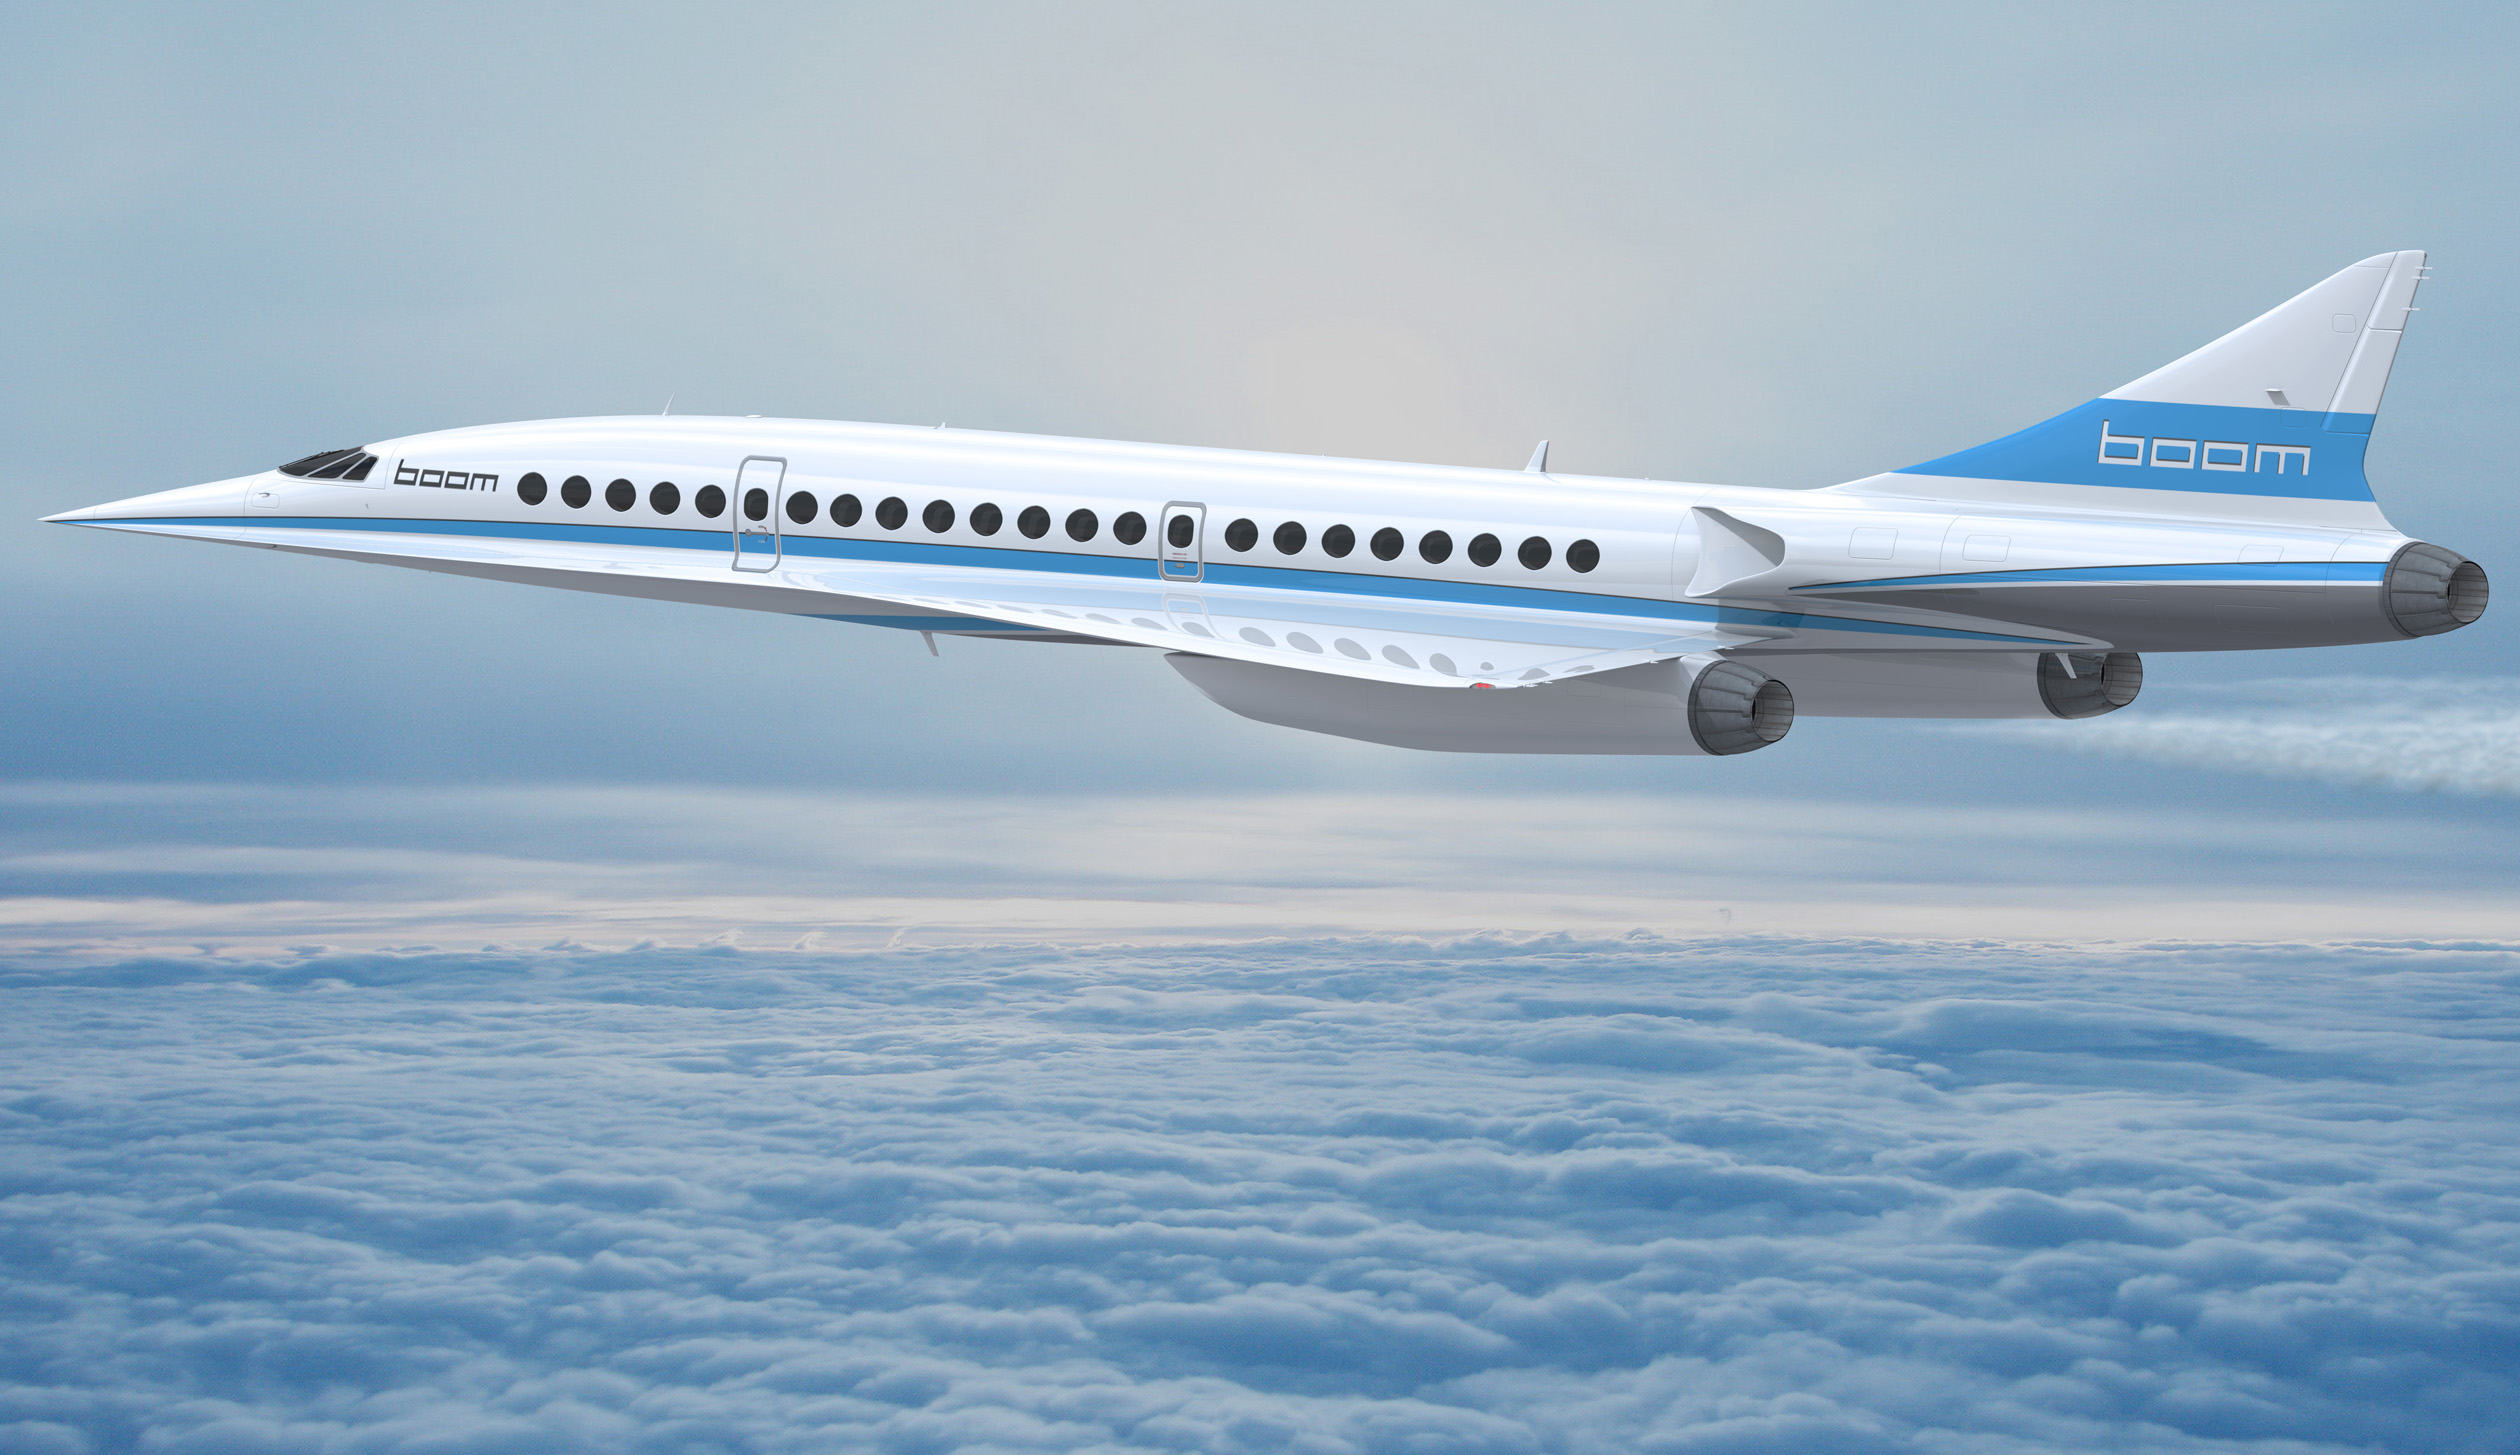 Boom Technology imagines an all-premium-class trijet seating 40-50 passengers paying the same per-seat ticket cost as they might shell out for conventional business class travel. With a cruising speed of Mach 2.2, Boom's airliner could reduce the flight time between New York City and London to just three hours and 15 minutes.